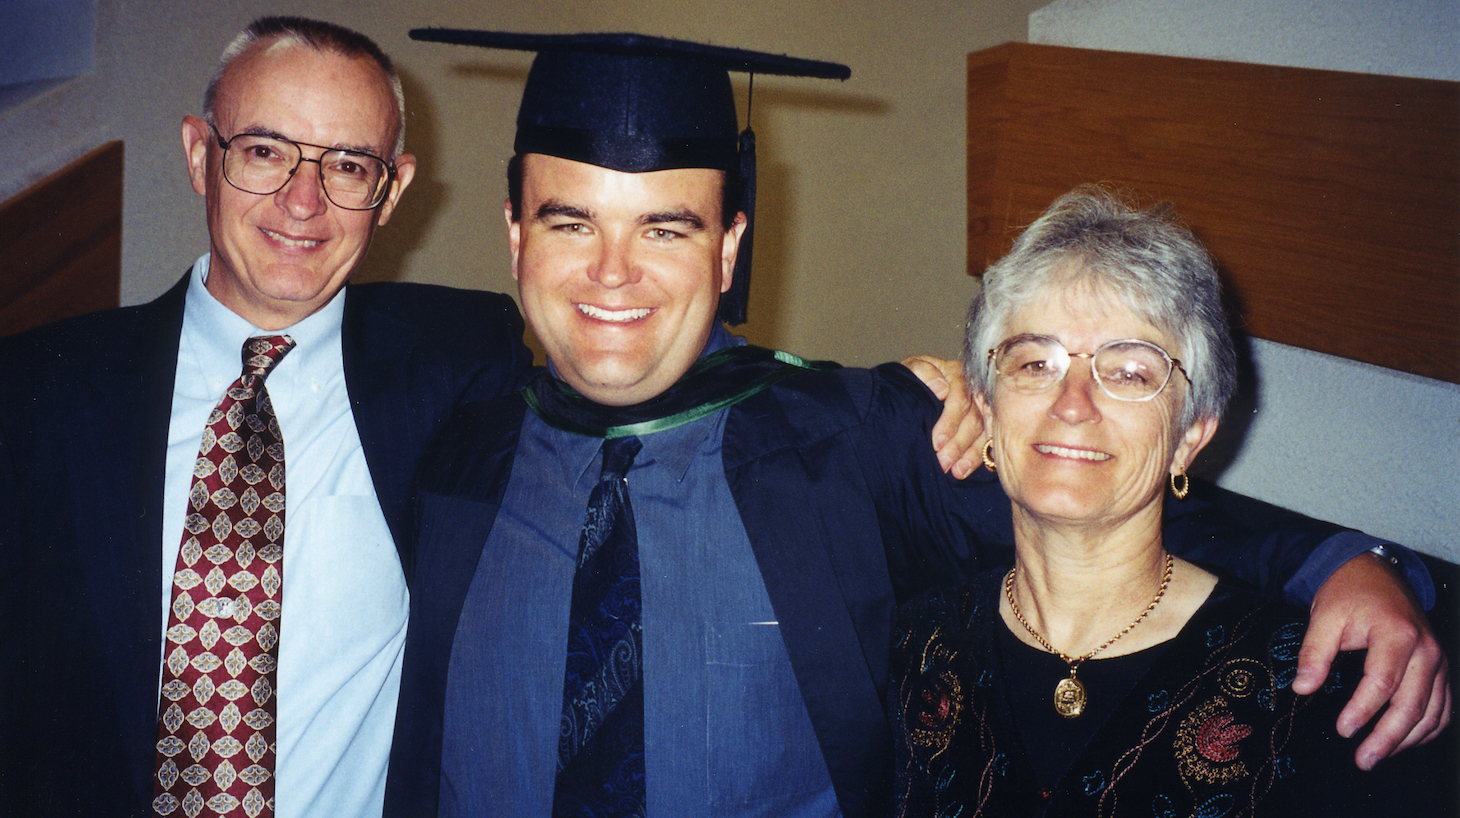 Photo of Andrew Bagby and his parents David and Kathleen Bagby at Andrew's graduation from medical school.